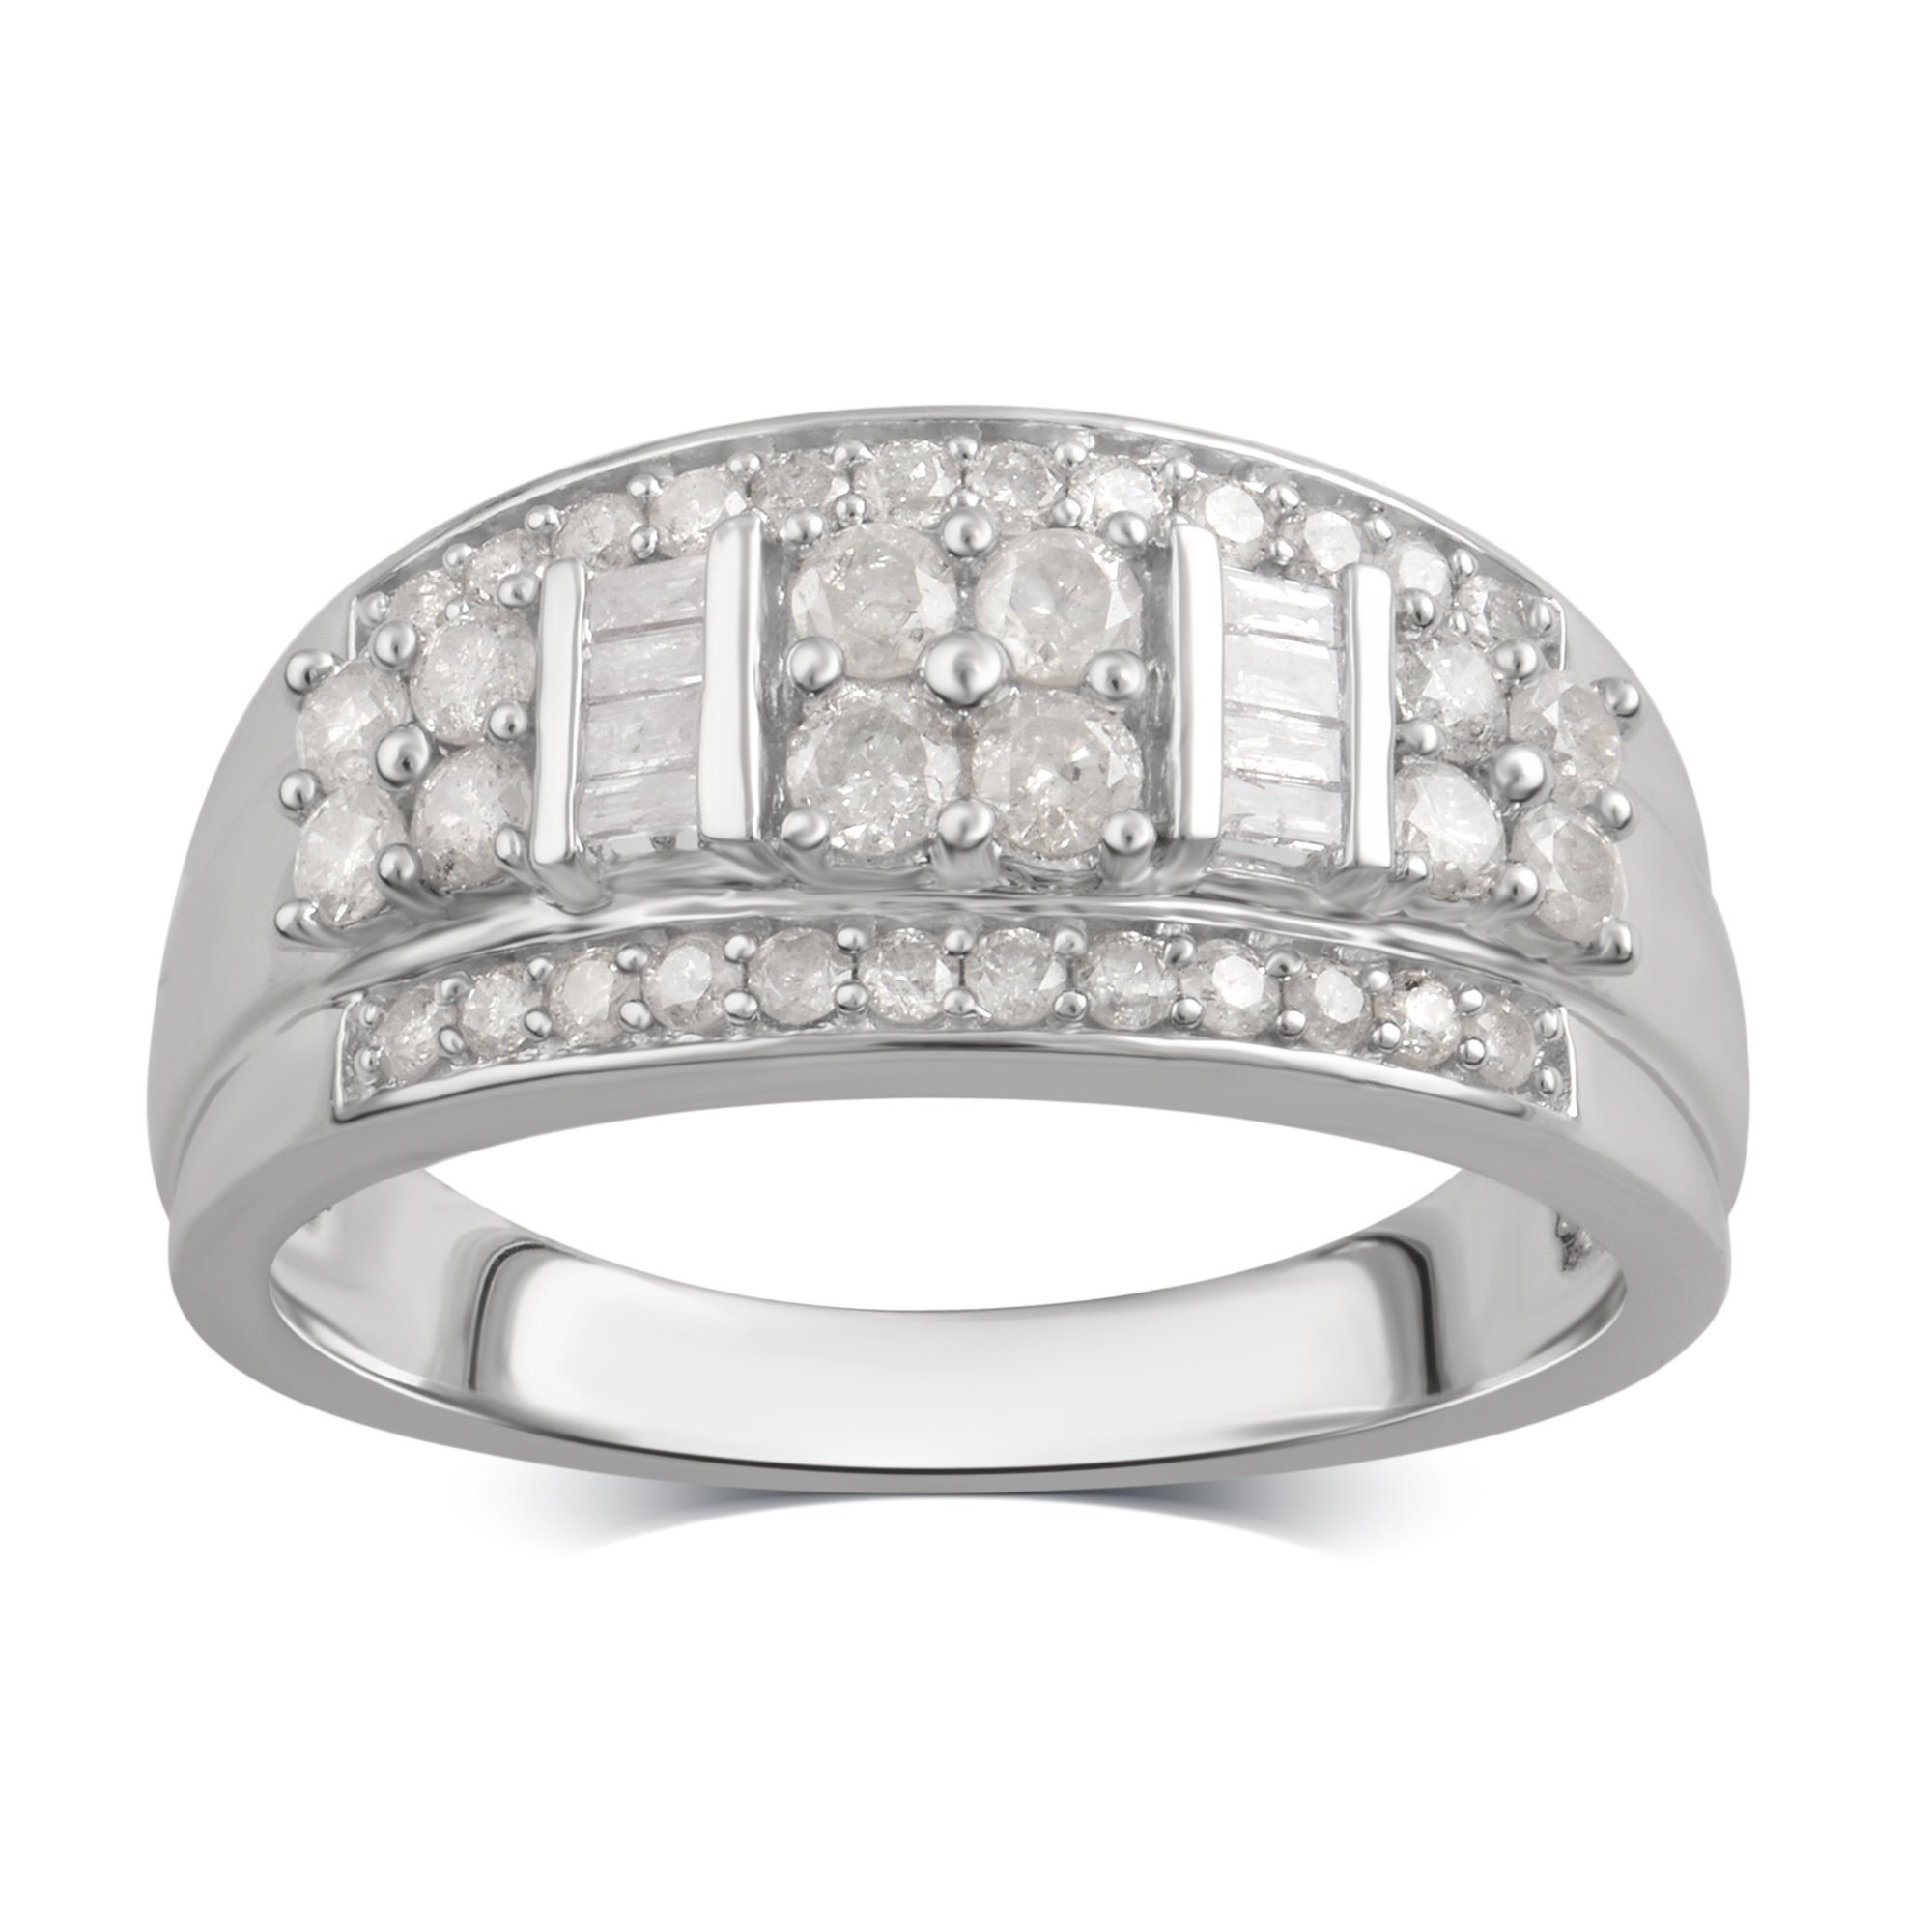 3 4 cttw Diamond Ring in Sterling Silver